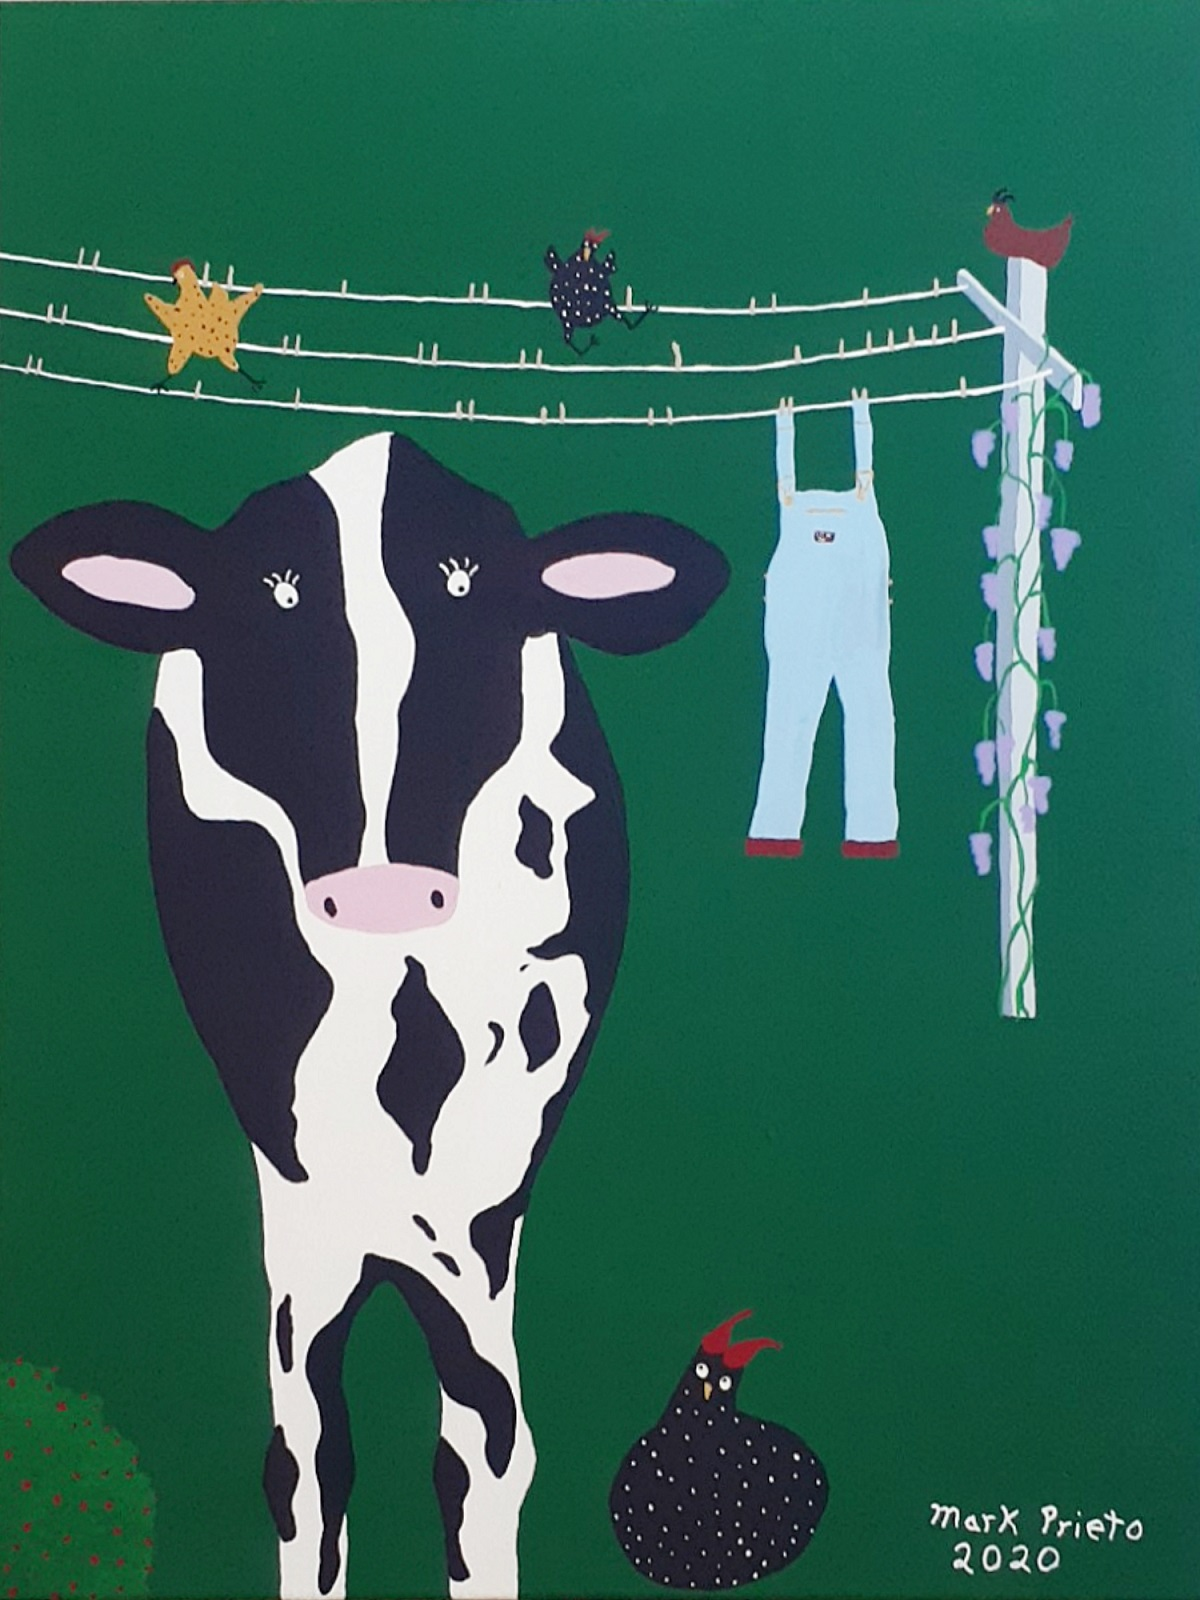 Cow with Overalls, work by Mark Prieto (MG: December 2020)